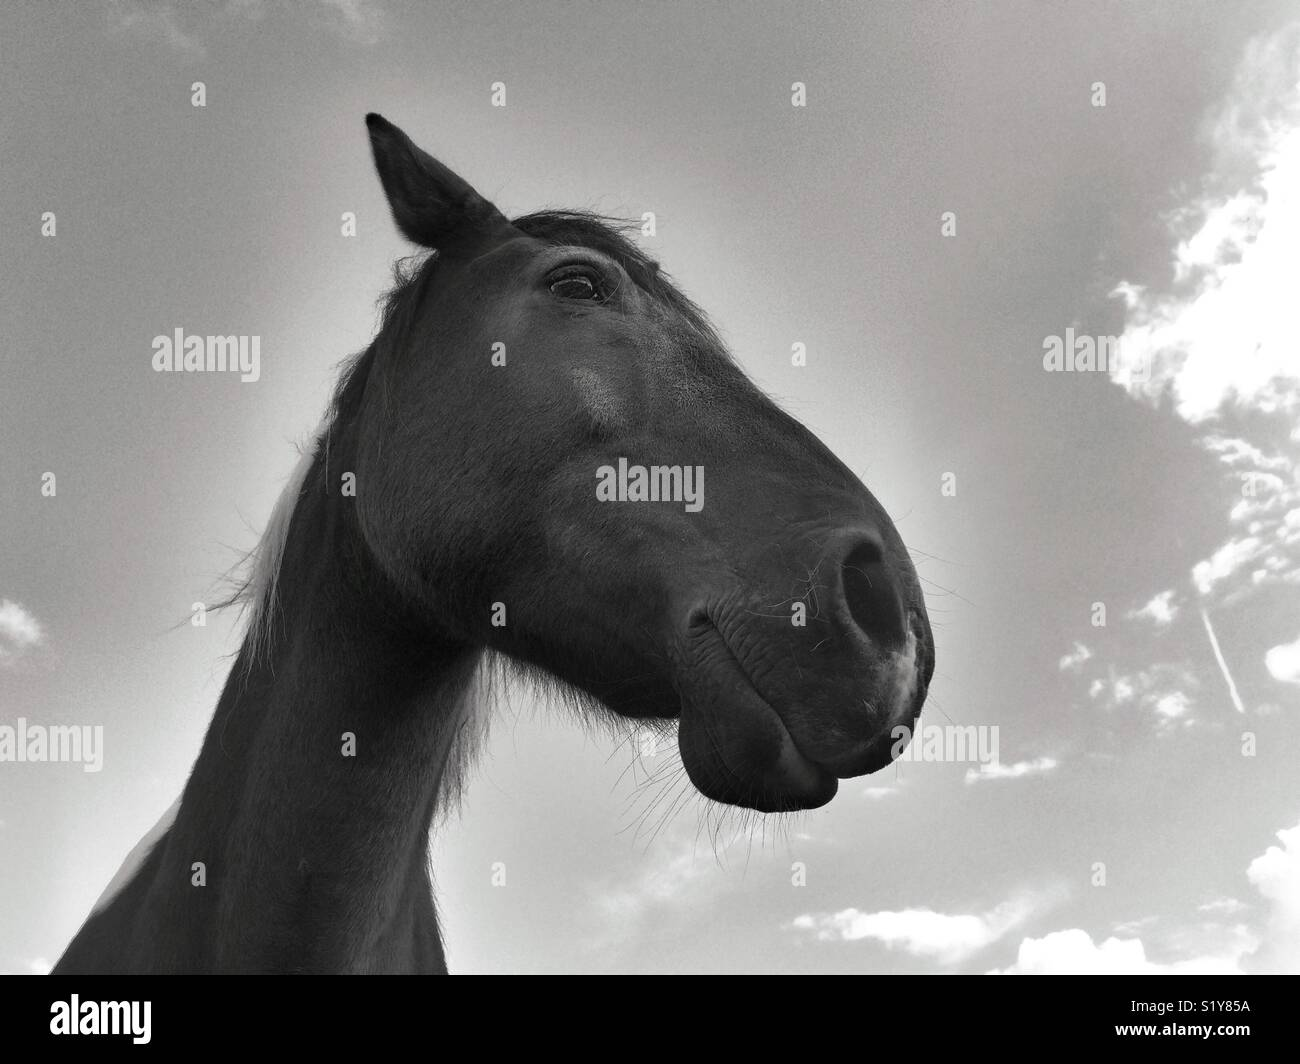 Happy Horse Strikes a pose for a portrait in black and white. The sky and the clouds are his back drop. Stock Photo